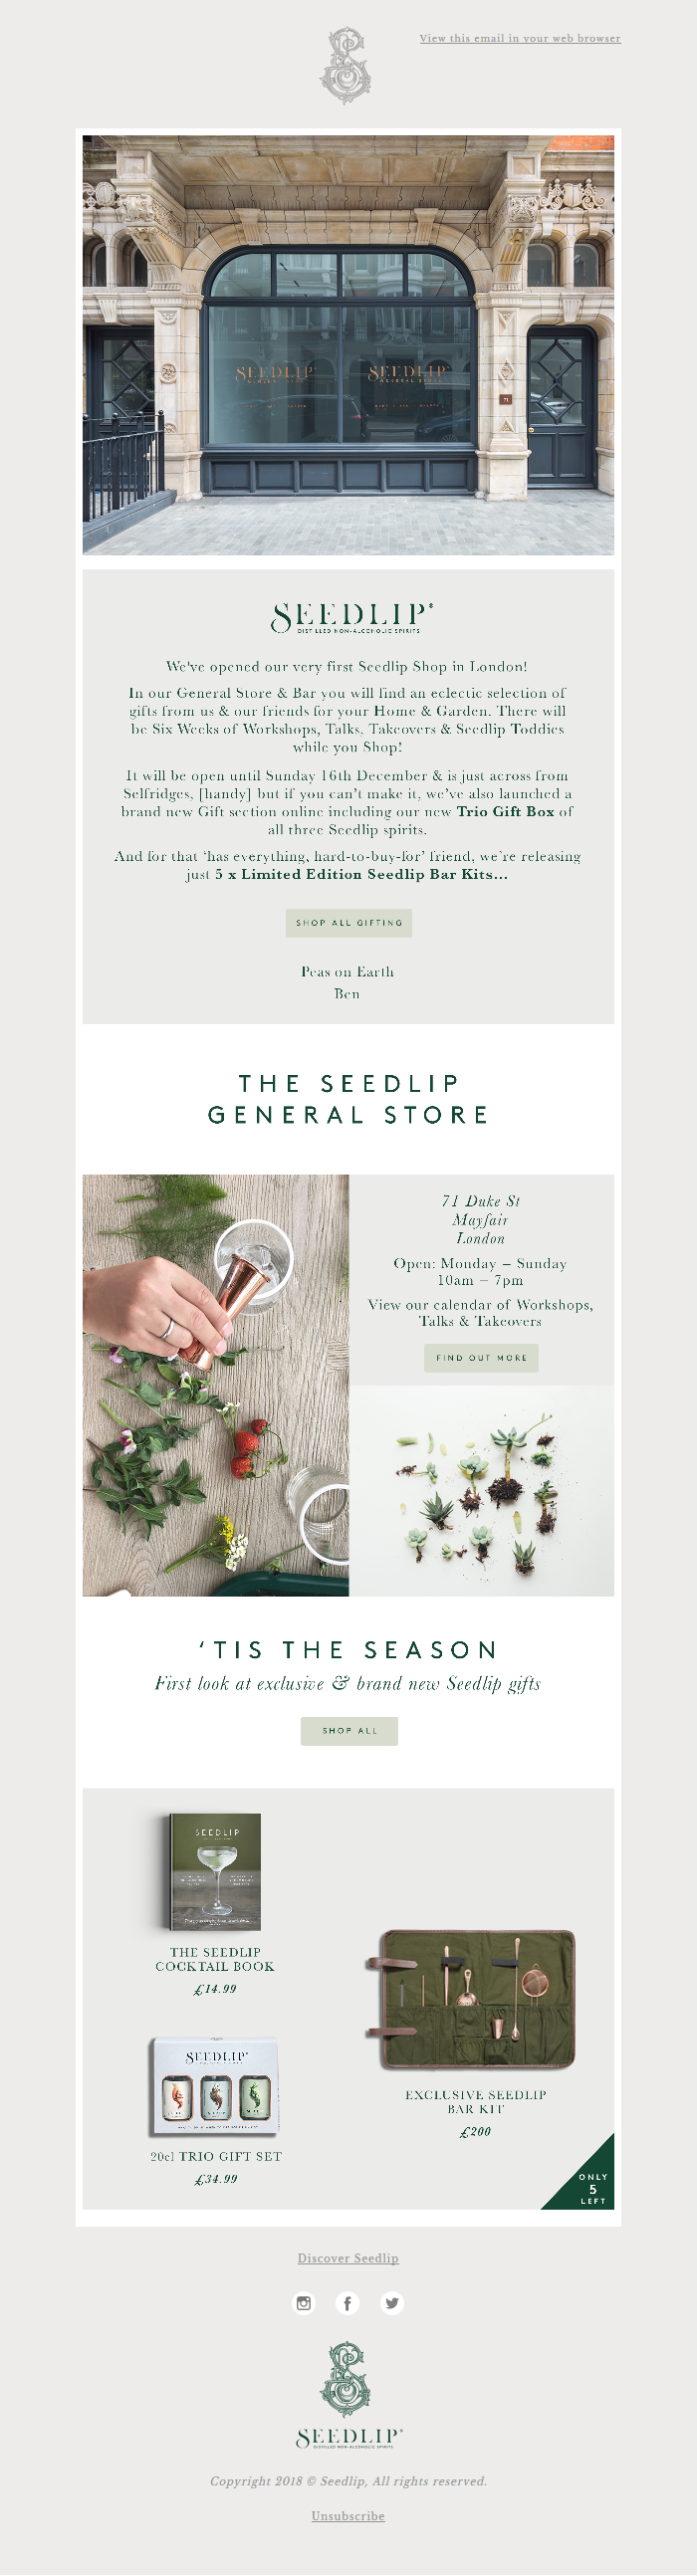 New Gifting & Seedlip Opens a Shop